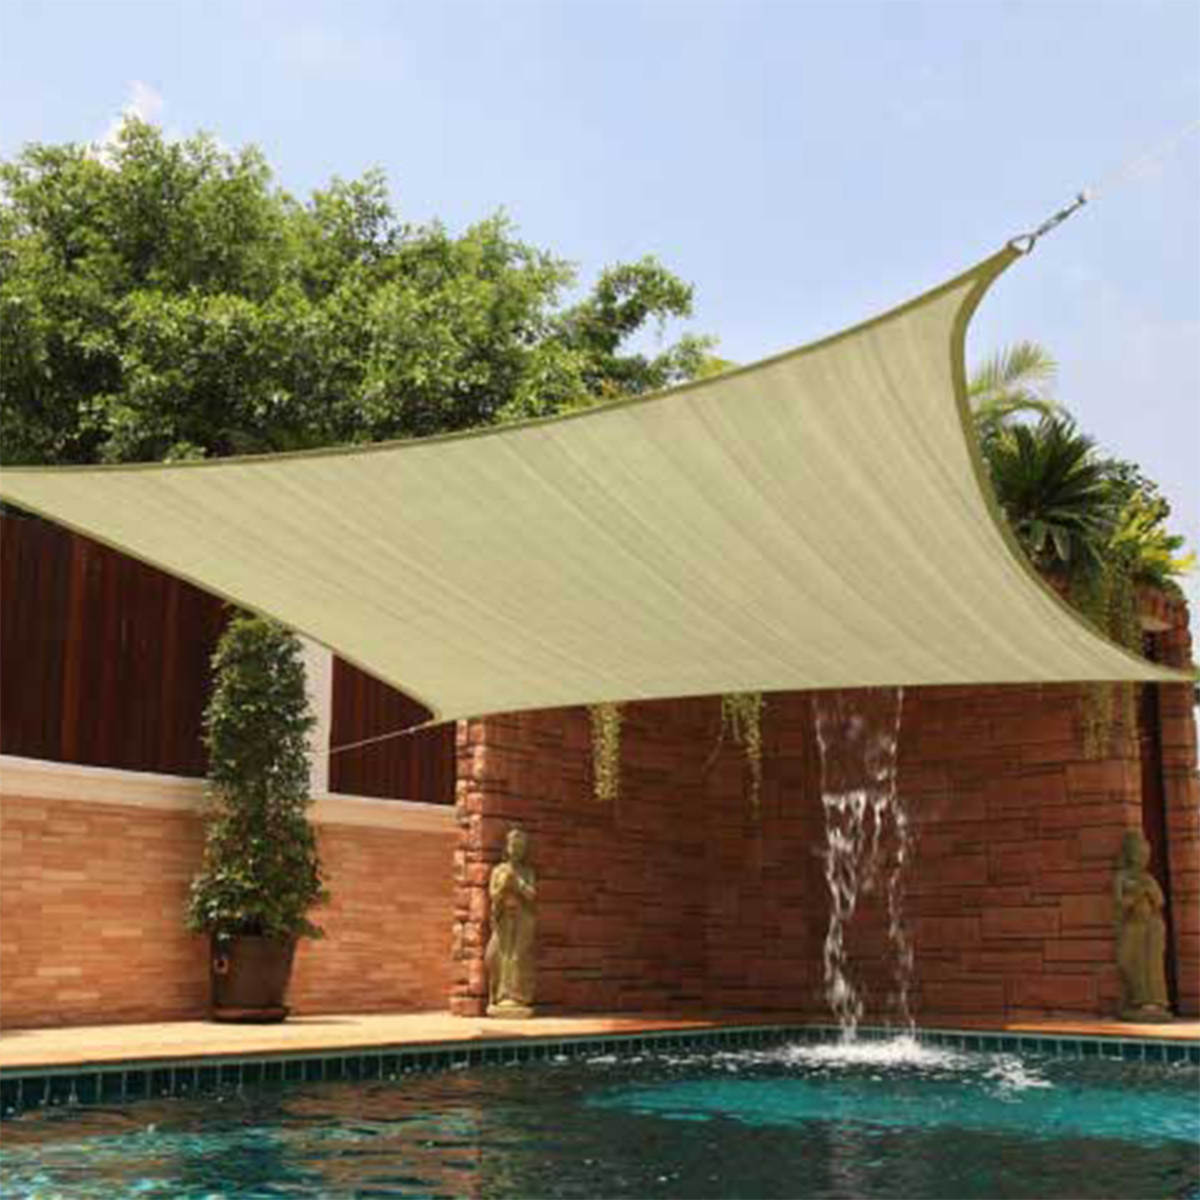 sun shade 12x12 square top sail beige tan sand for deck patio cover new backyard ebay. Black Bedroom Furniture Sets. Home Design Ideas